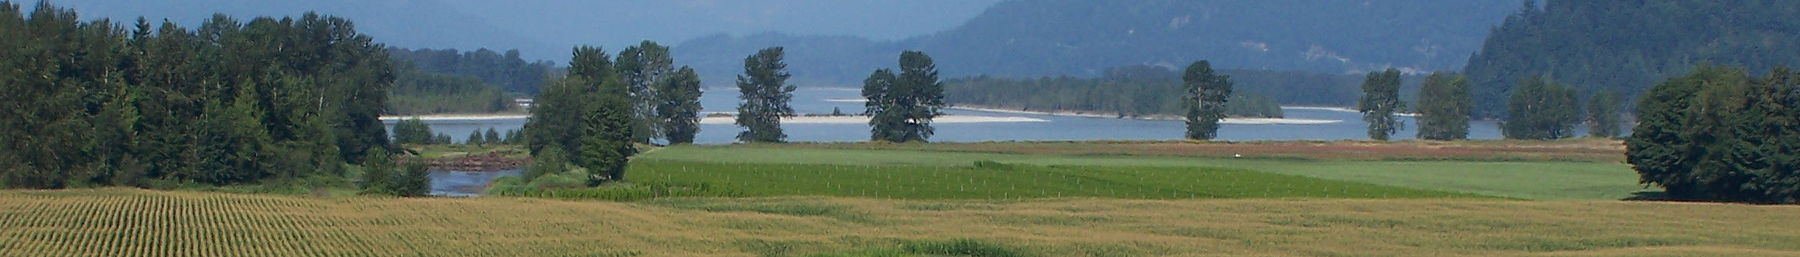 Farms and the Fraser River near Agassiz, BC